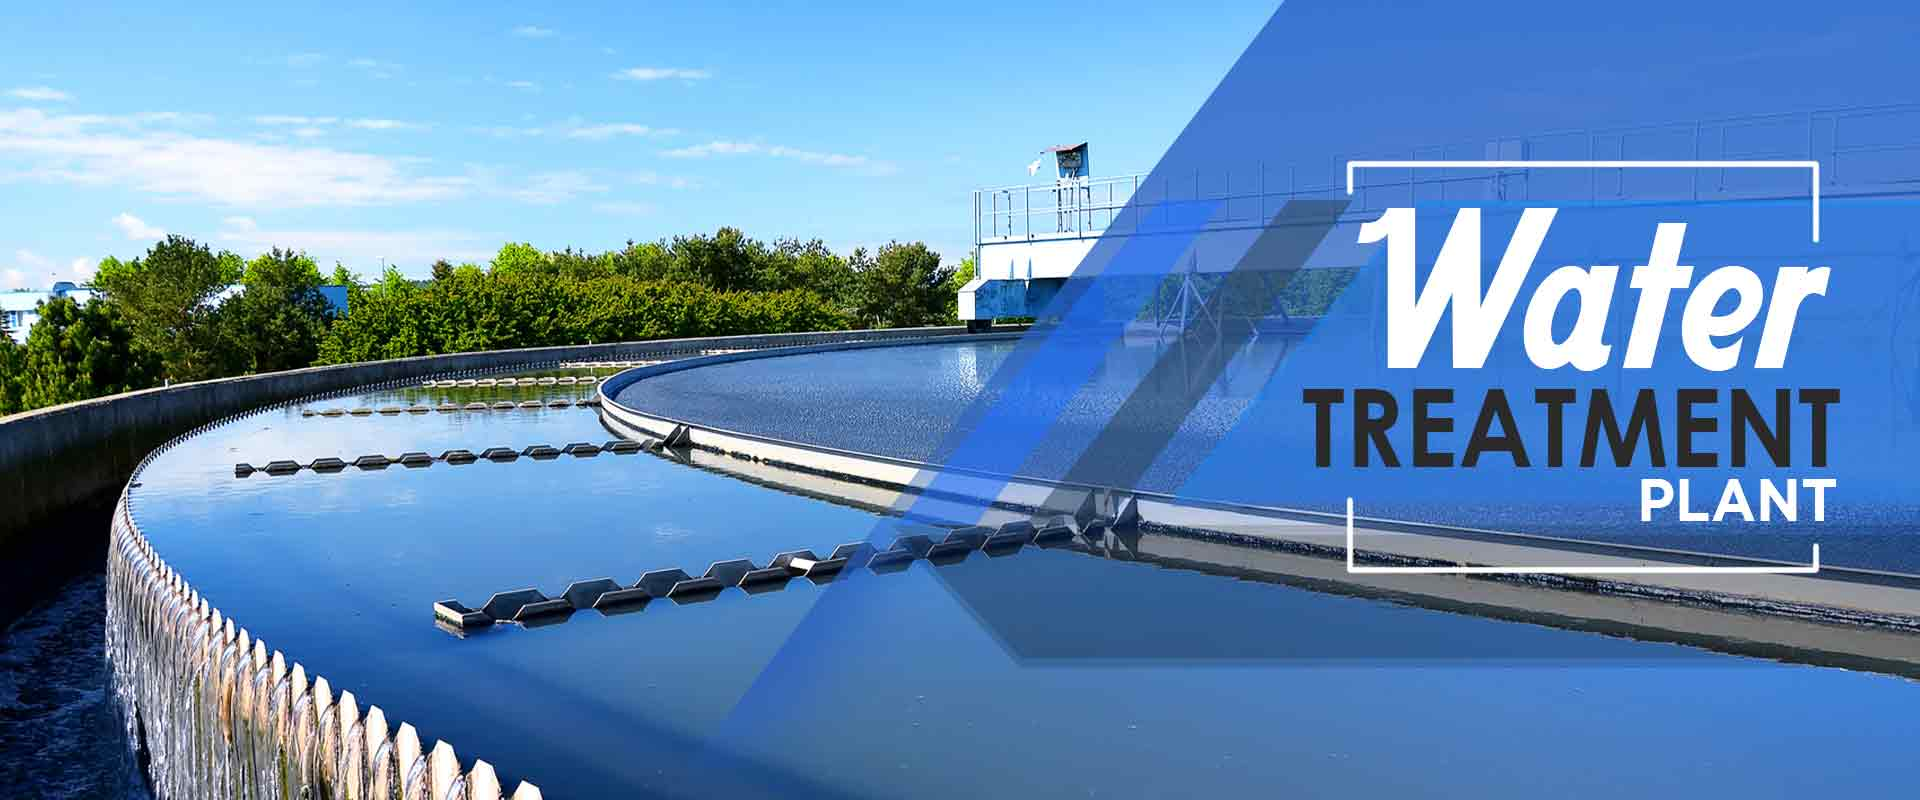 Water Treatment Plant Manufacturers In St. Petersburg